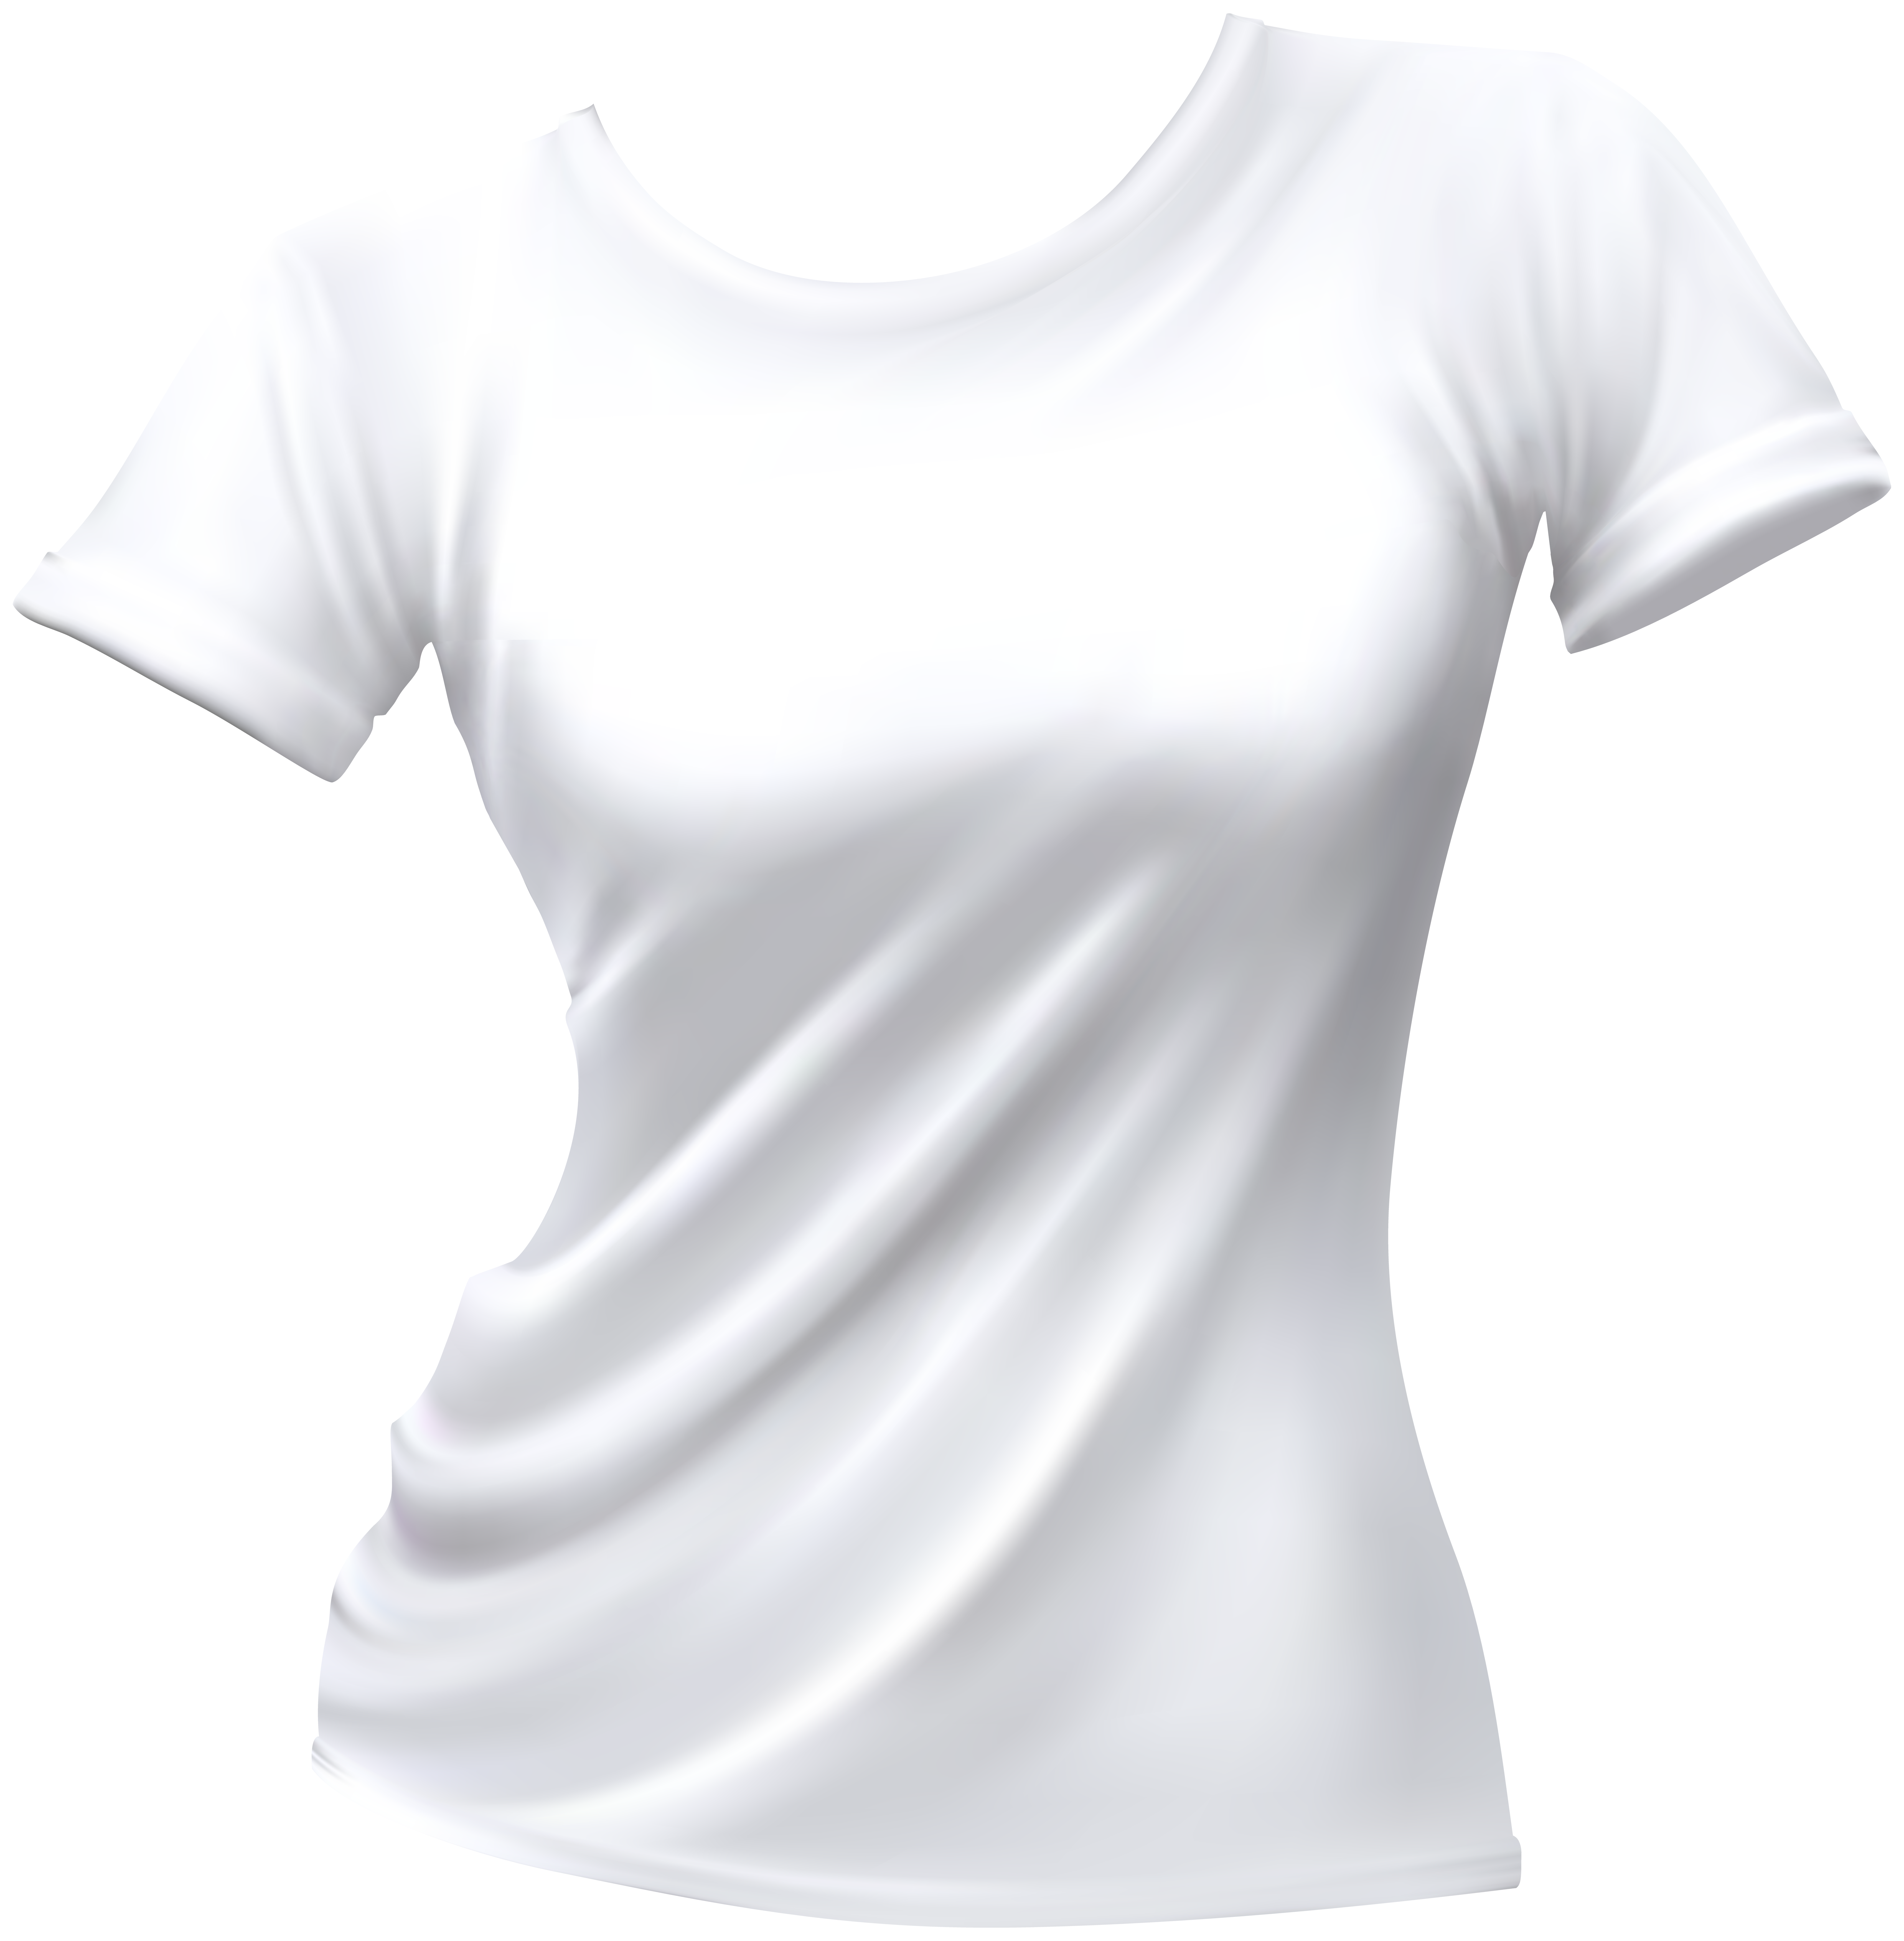 Womens t shirt clipart clipart free library Female T shirt White PNG Clip Art - Best WEB Clipart clipart free library